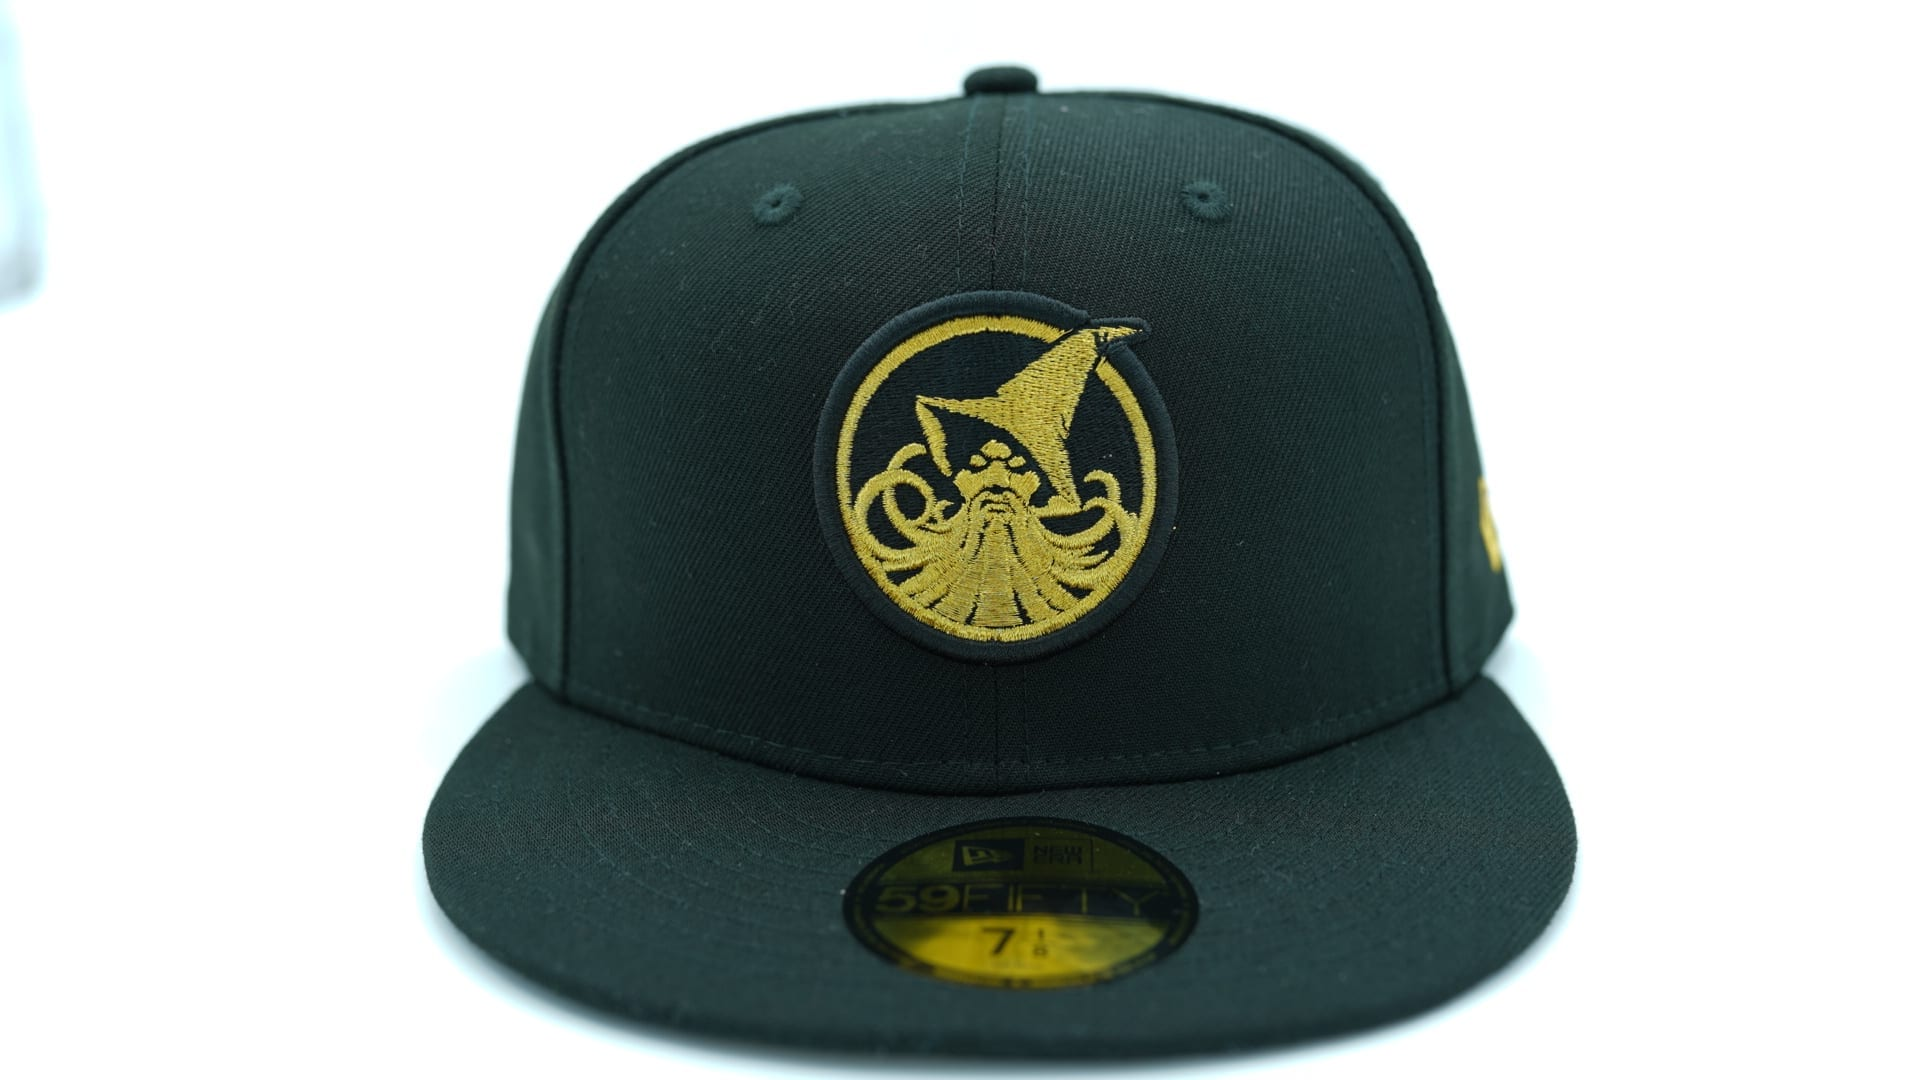 MTA logo Black 59Fifty Fitted Cap by NEW ERA x MTA